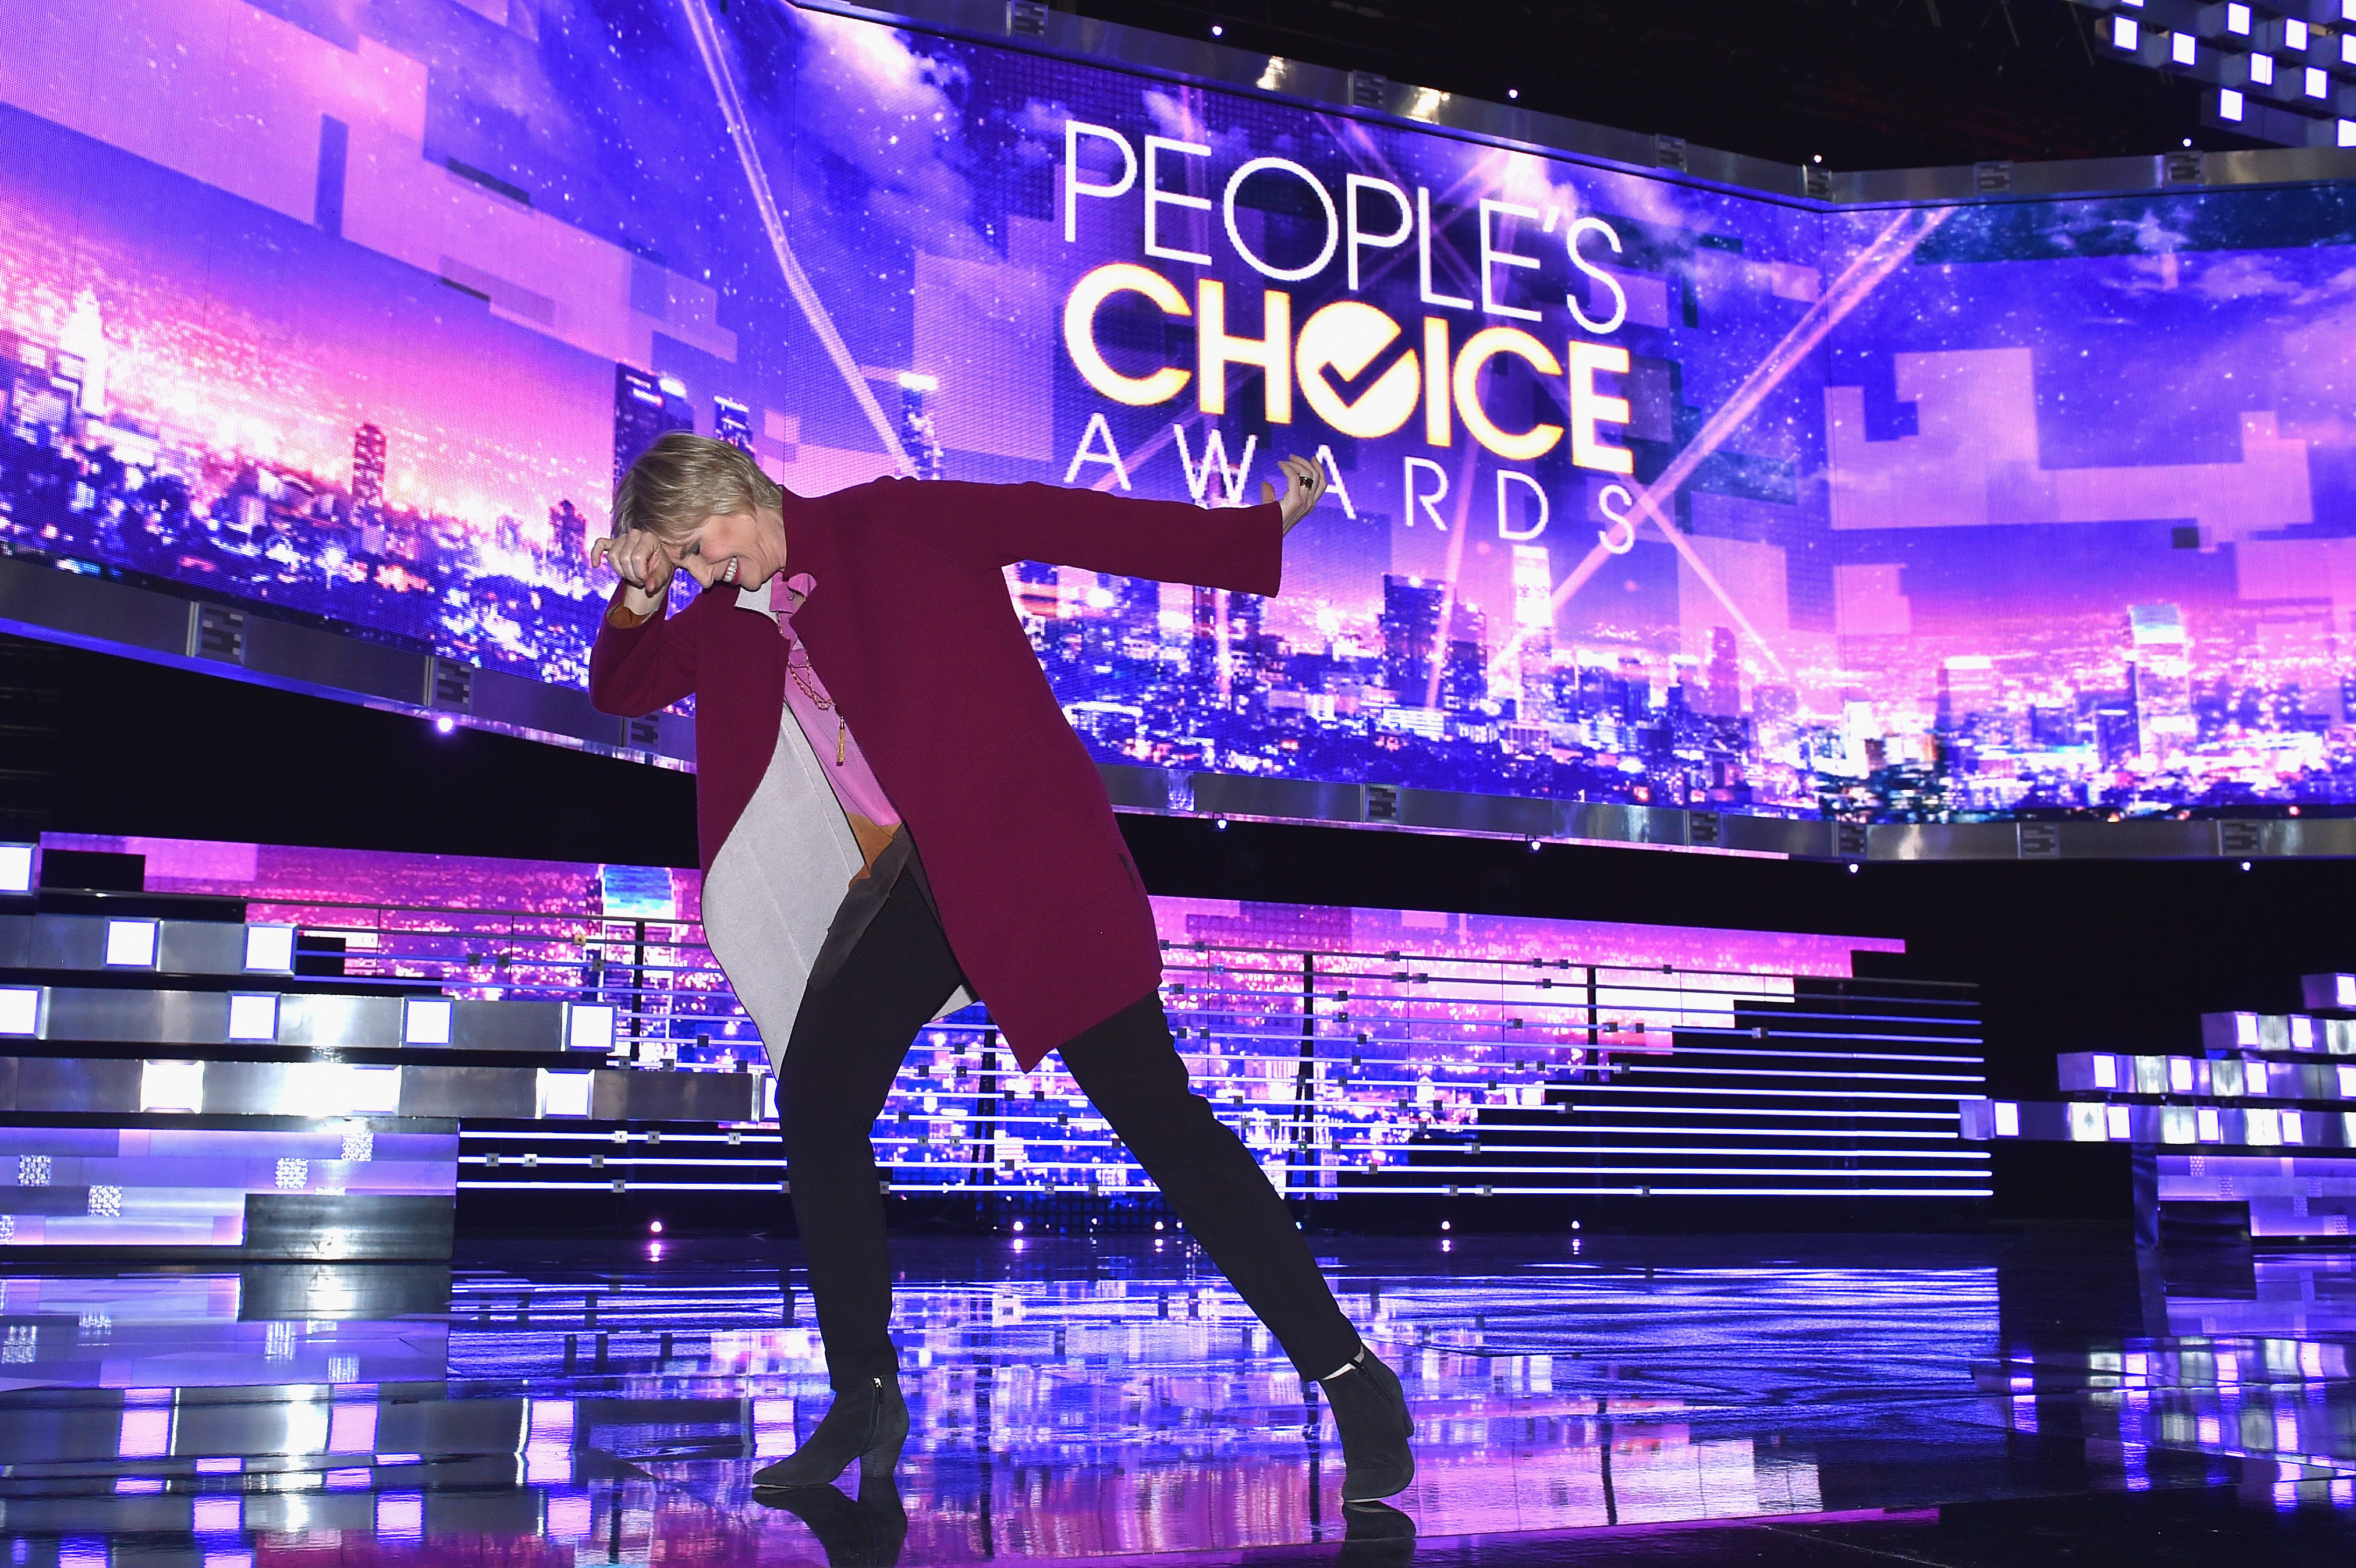 People's Choice Awards 2016 Live Stream: Where To Watch The Award ...